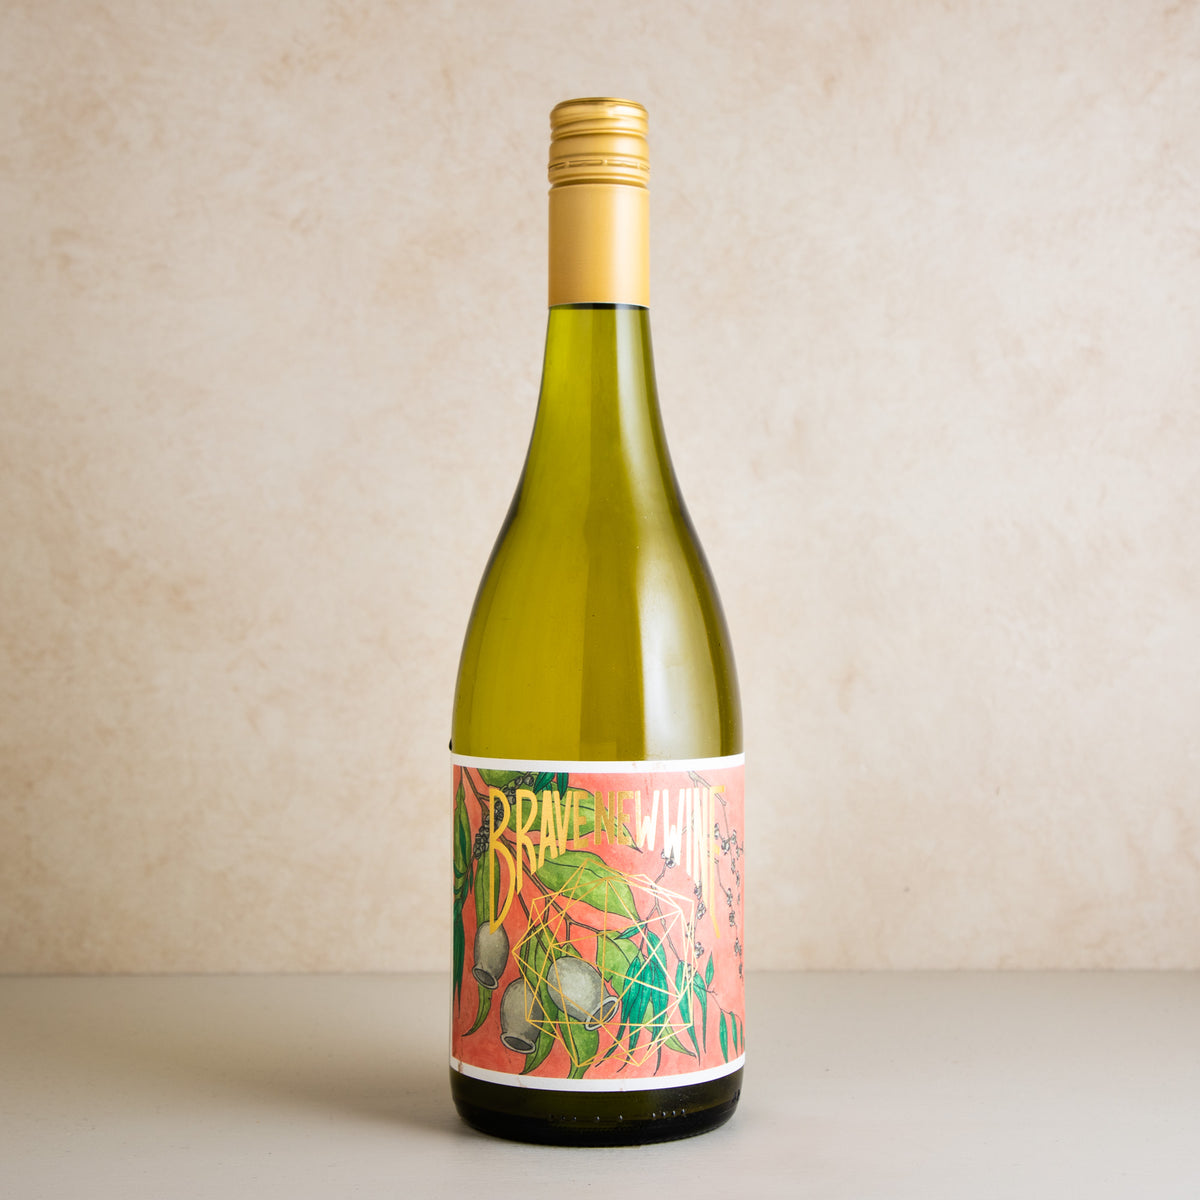 2018 Brave New Wine 'Bouche'